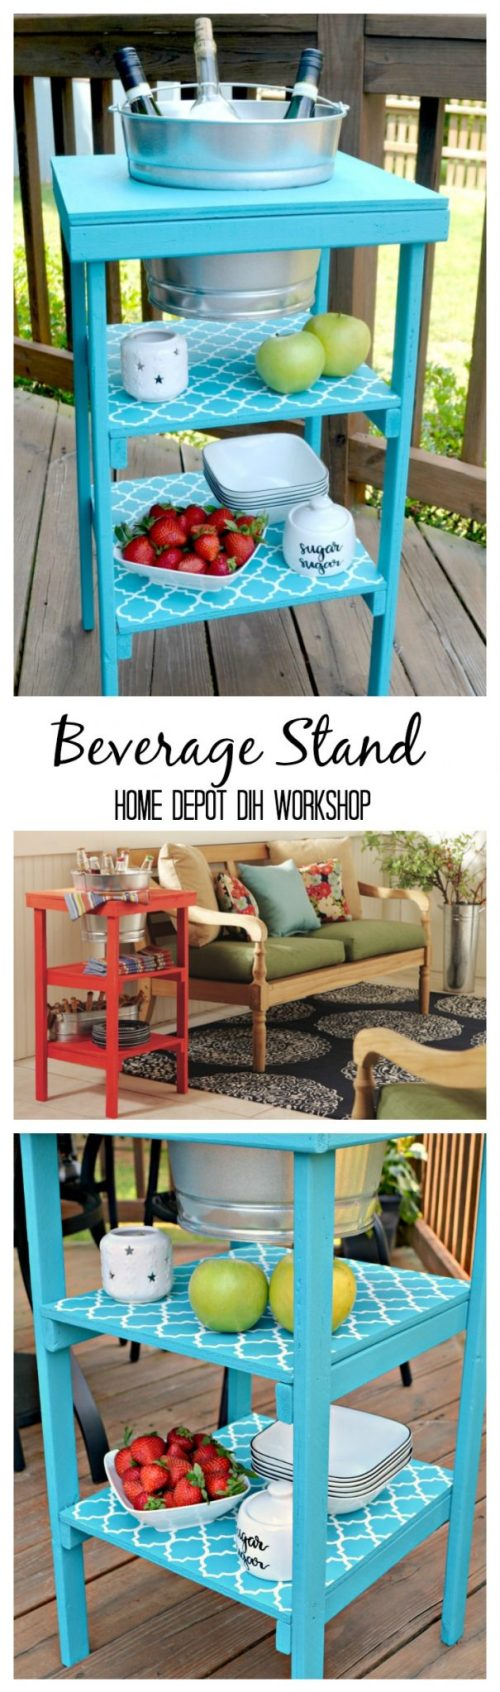 Beverage Stand DIH Workshop